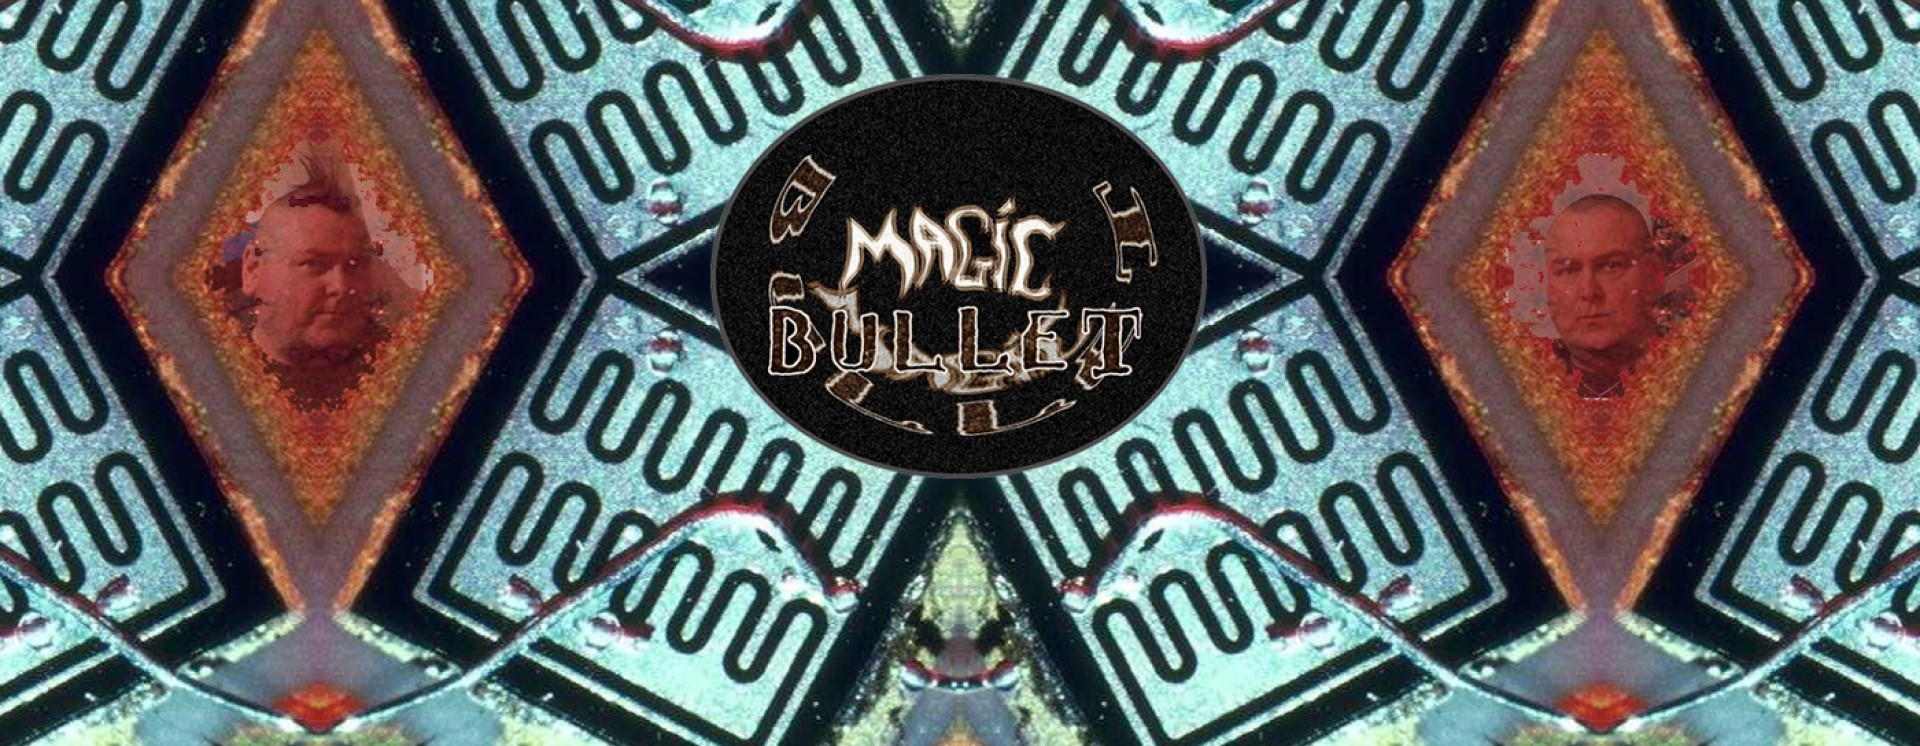 Mick Magic / Magic Bullet image